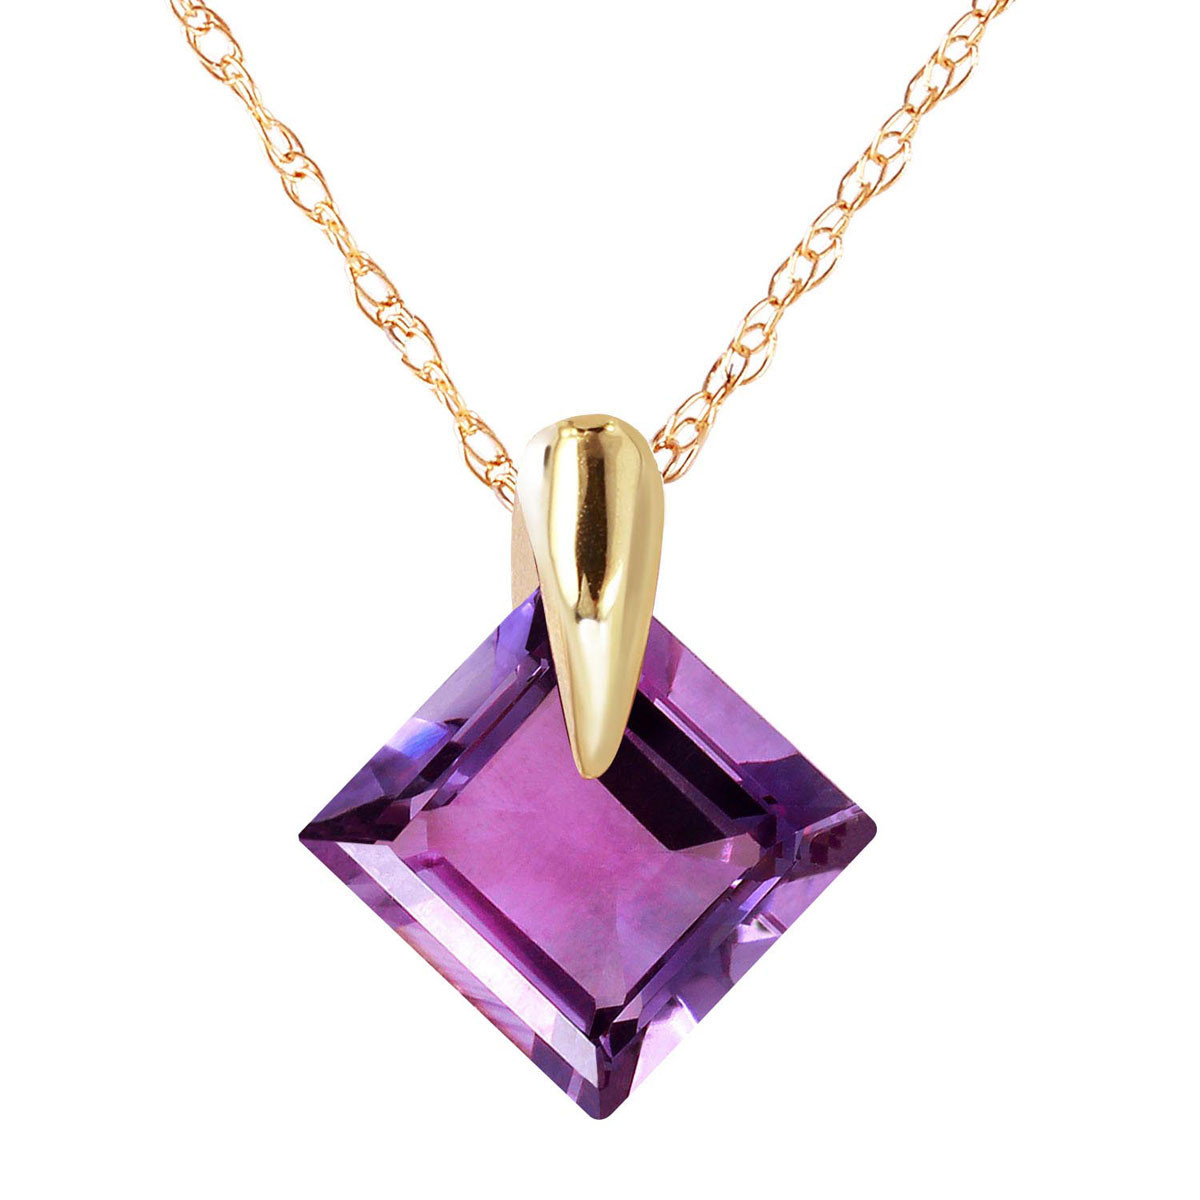 Amethyst princess pendant necklace 116 ct in 9ct gold 1408y qp amethyst princess pendant necklace 116 ct in 9ct gold aloadofball Choice Image